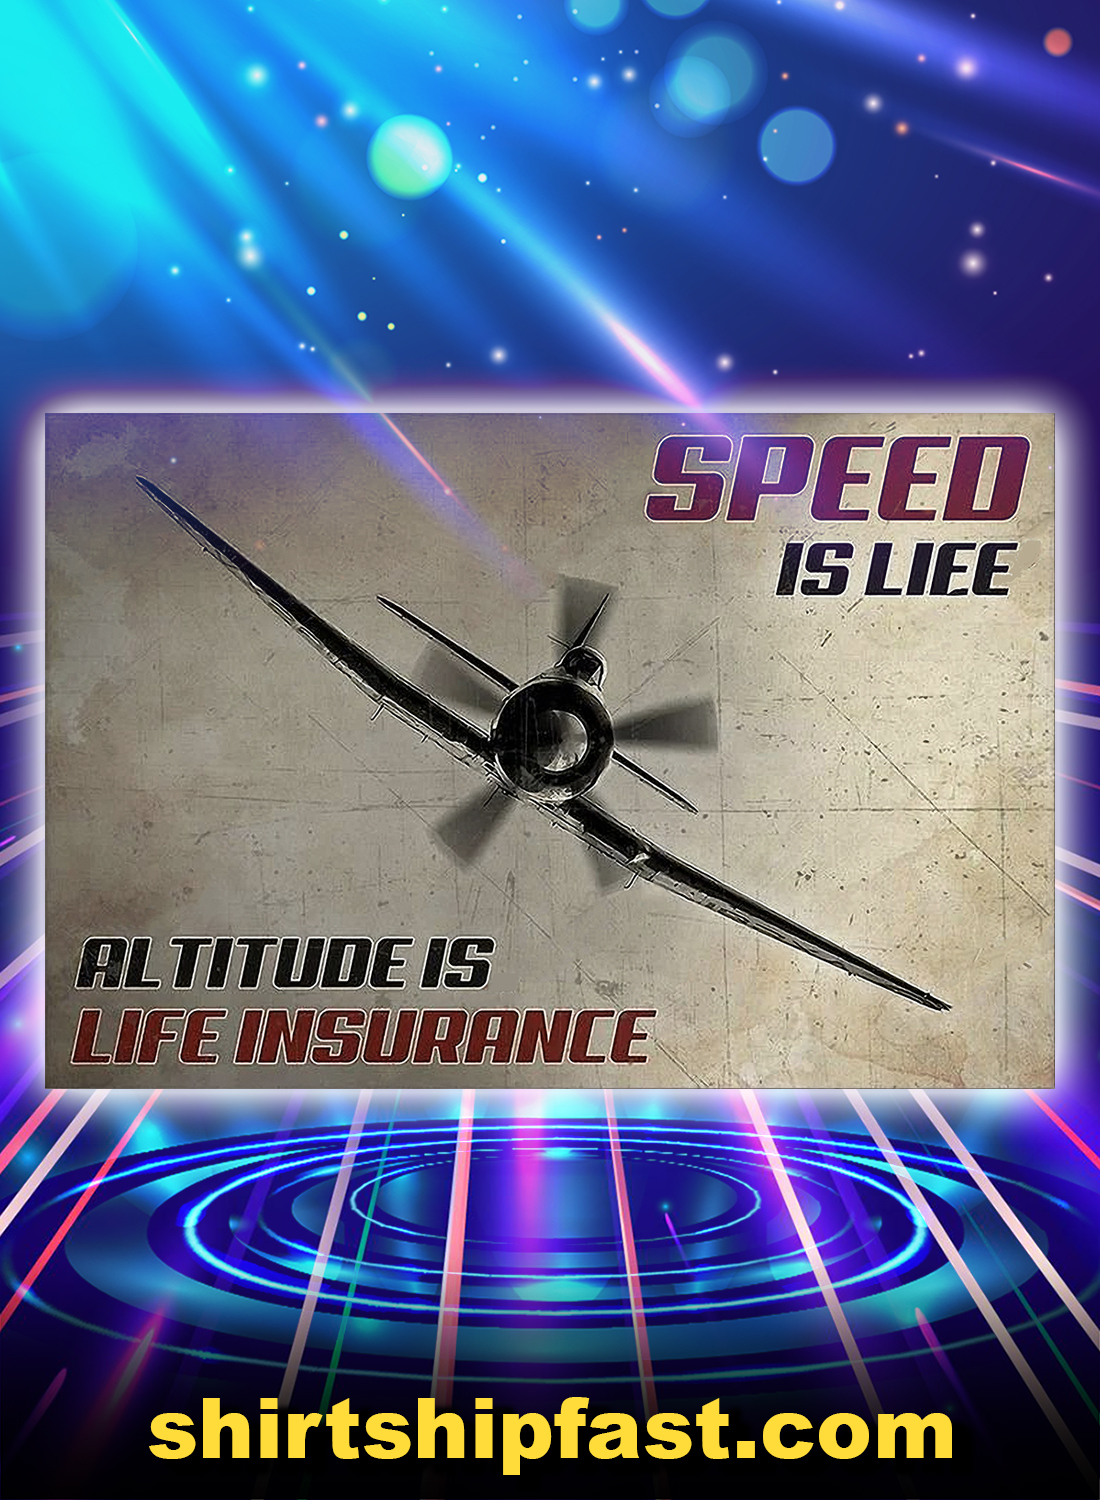 Pilot speed is life altitude is life insurance poster